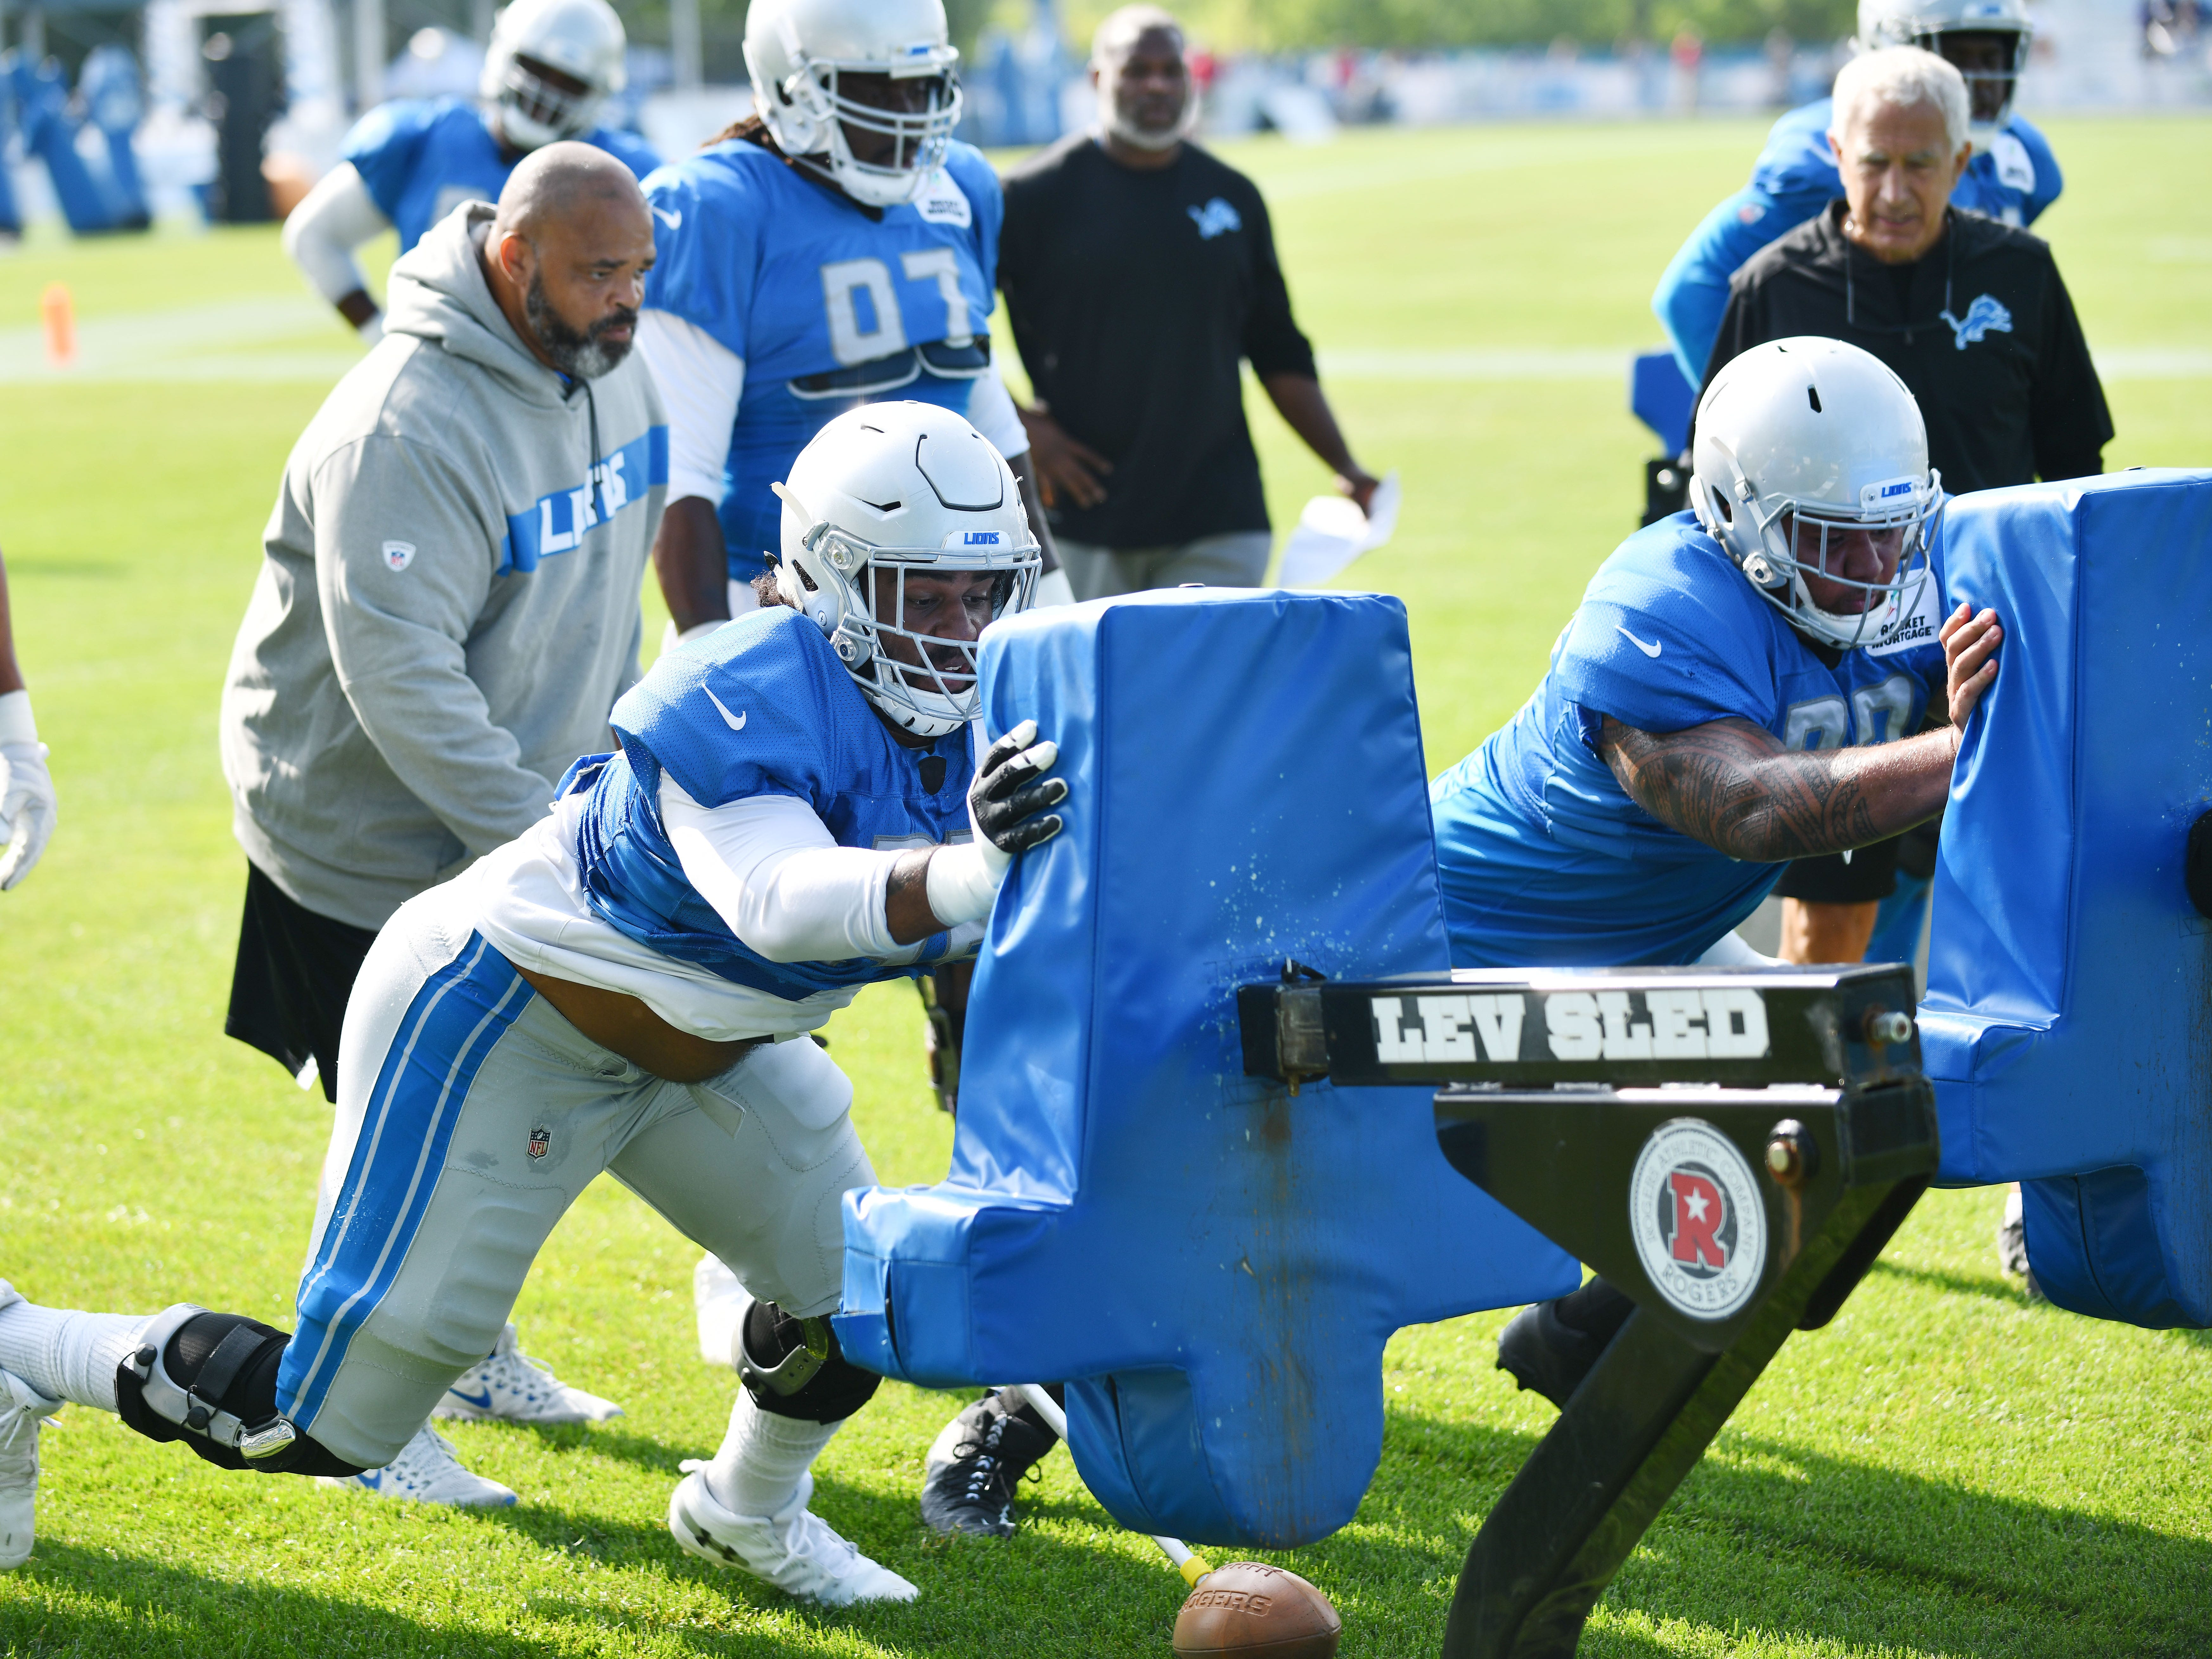 Lions defensive tackles JoJo Wicker and Josh Fatu hit the sled during drills.